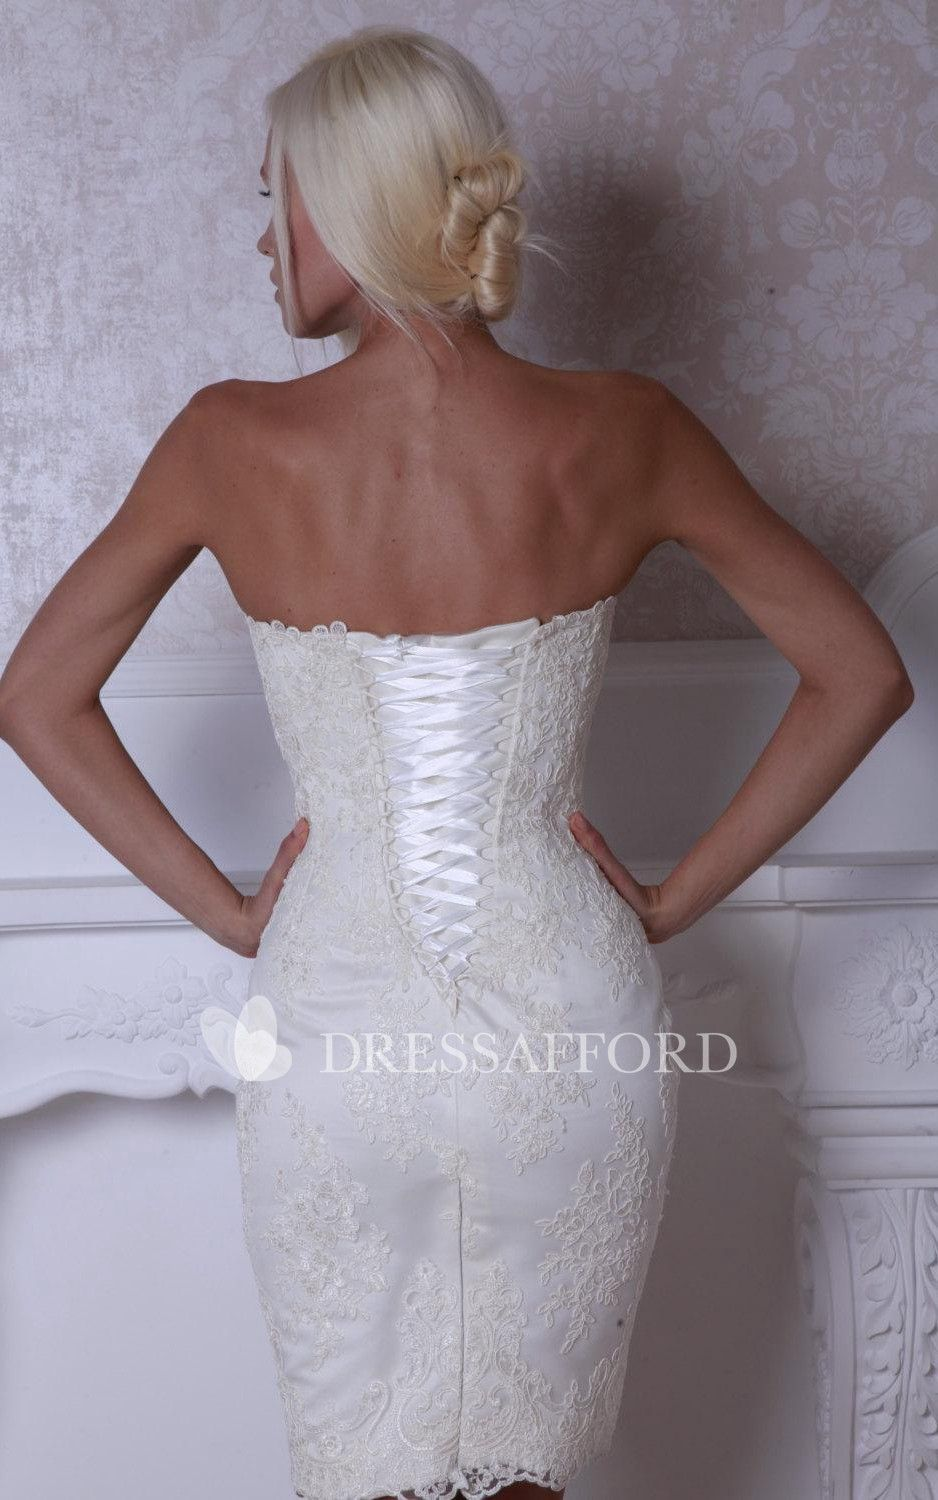 Lace Lace Up Back Fitted Short Bridal Dress Short Lace Wedding Dress Short Bridal Dress Mini Wedding Dresses